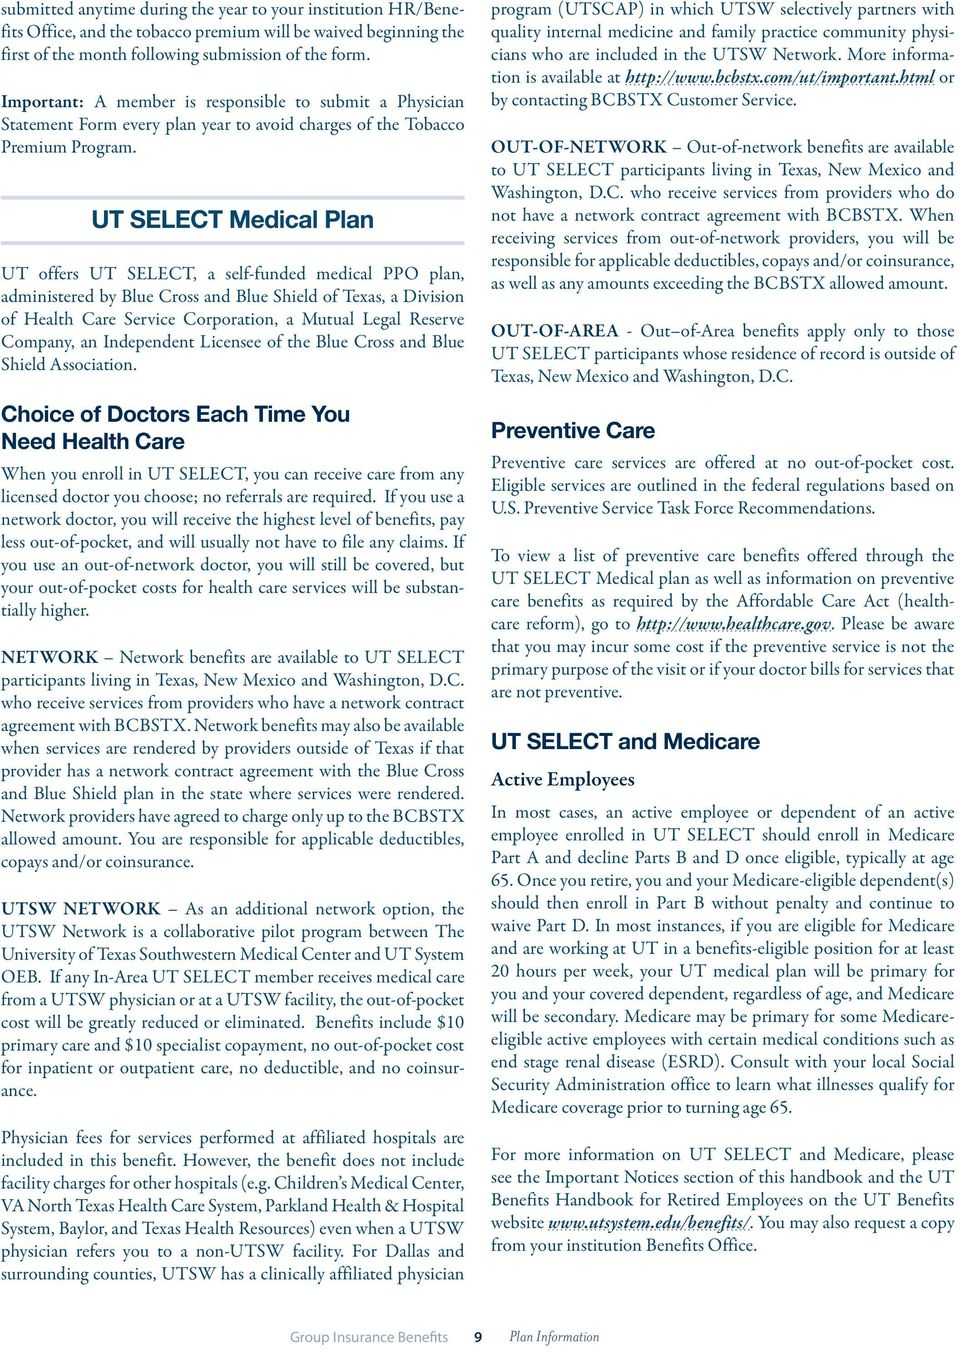 UT offers UT SELECT, a self-funded medical PPO plan, administered by Blue Cross and Blue Shield of Texas, a Division of Health Care Service Corporation, a Mutual Legal Reserve Company, an Independent